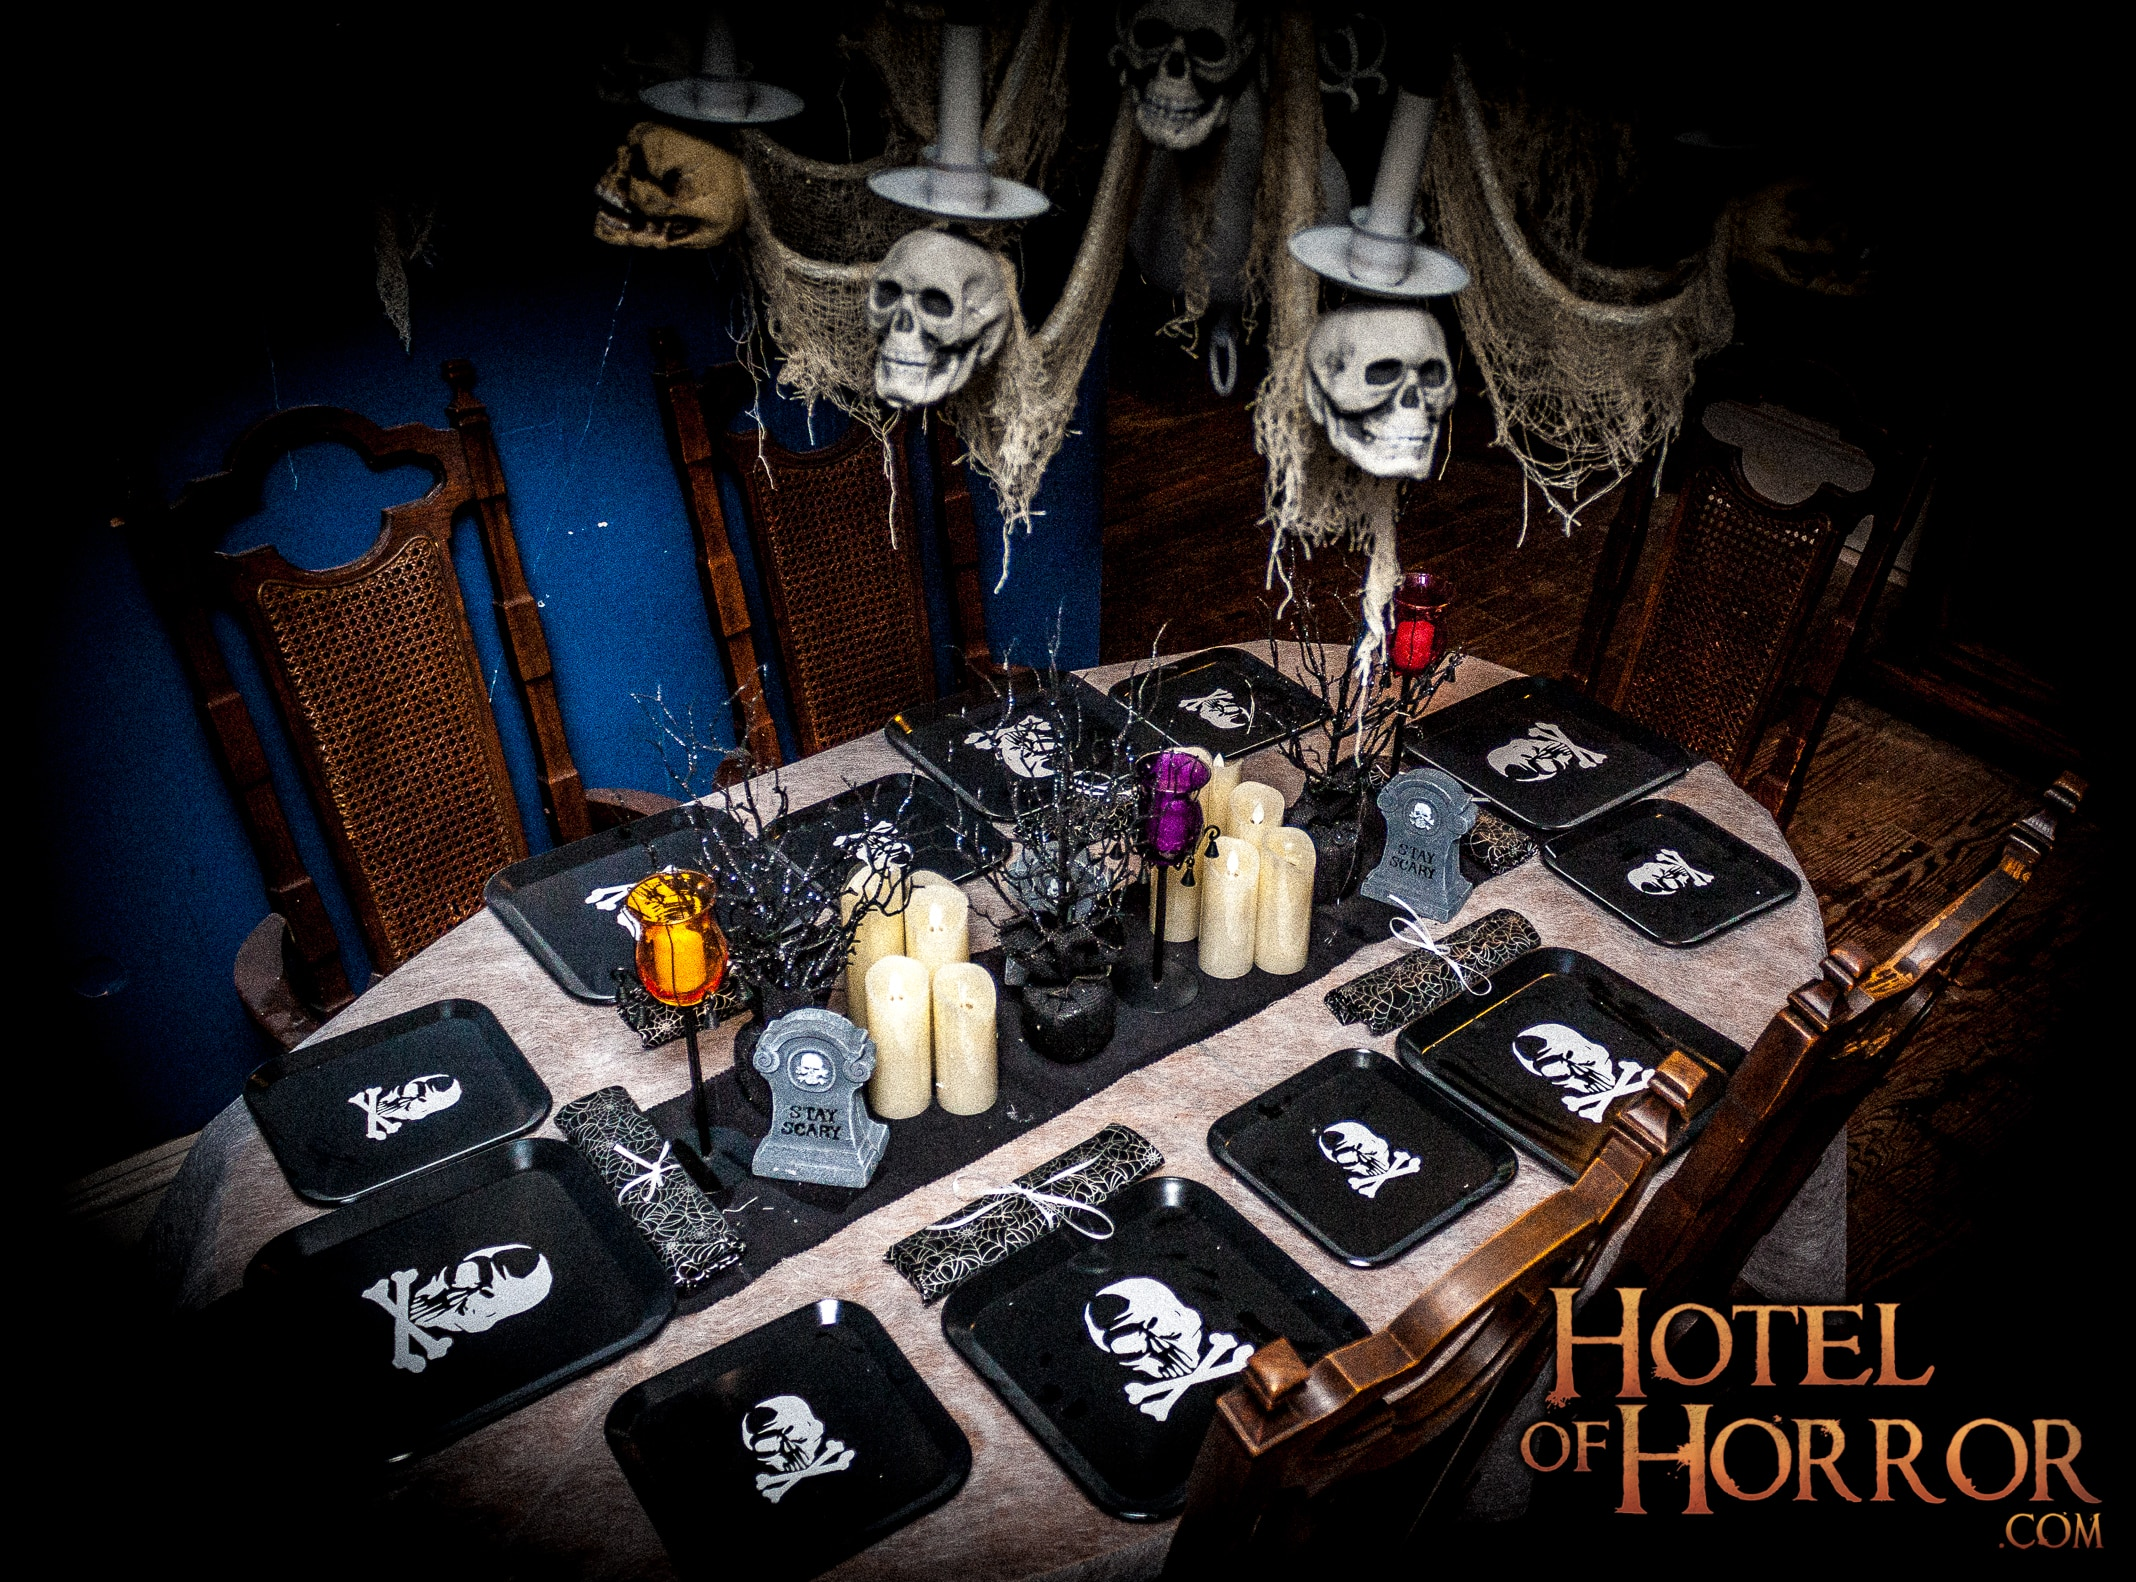 Hotel of Horror 2016 40 - Hotel of Horror 2017 Review